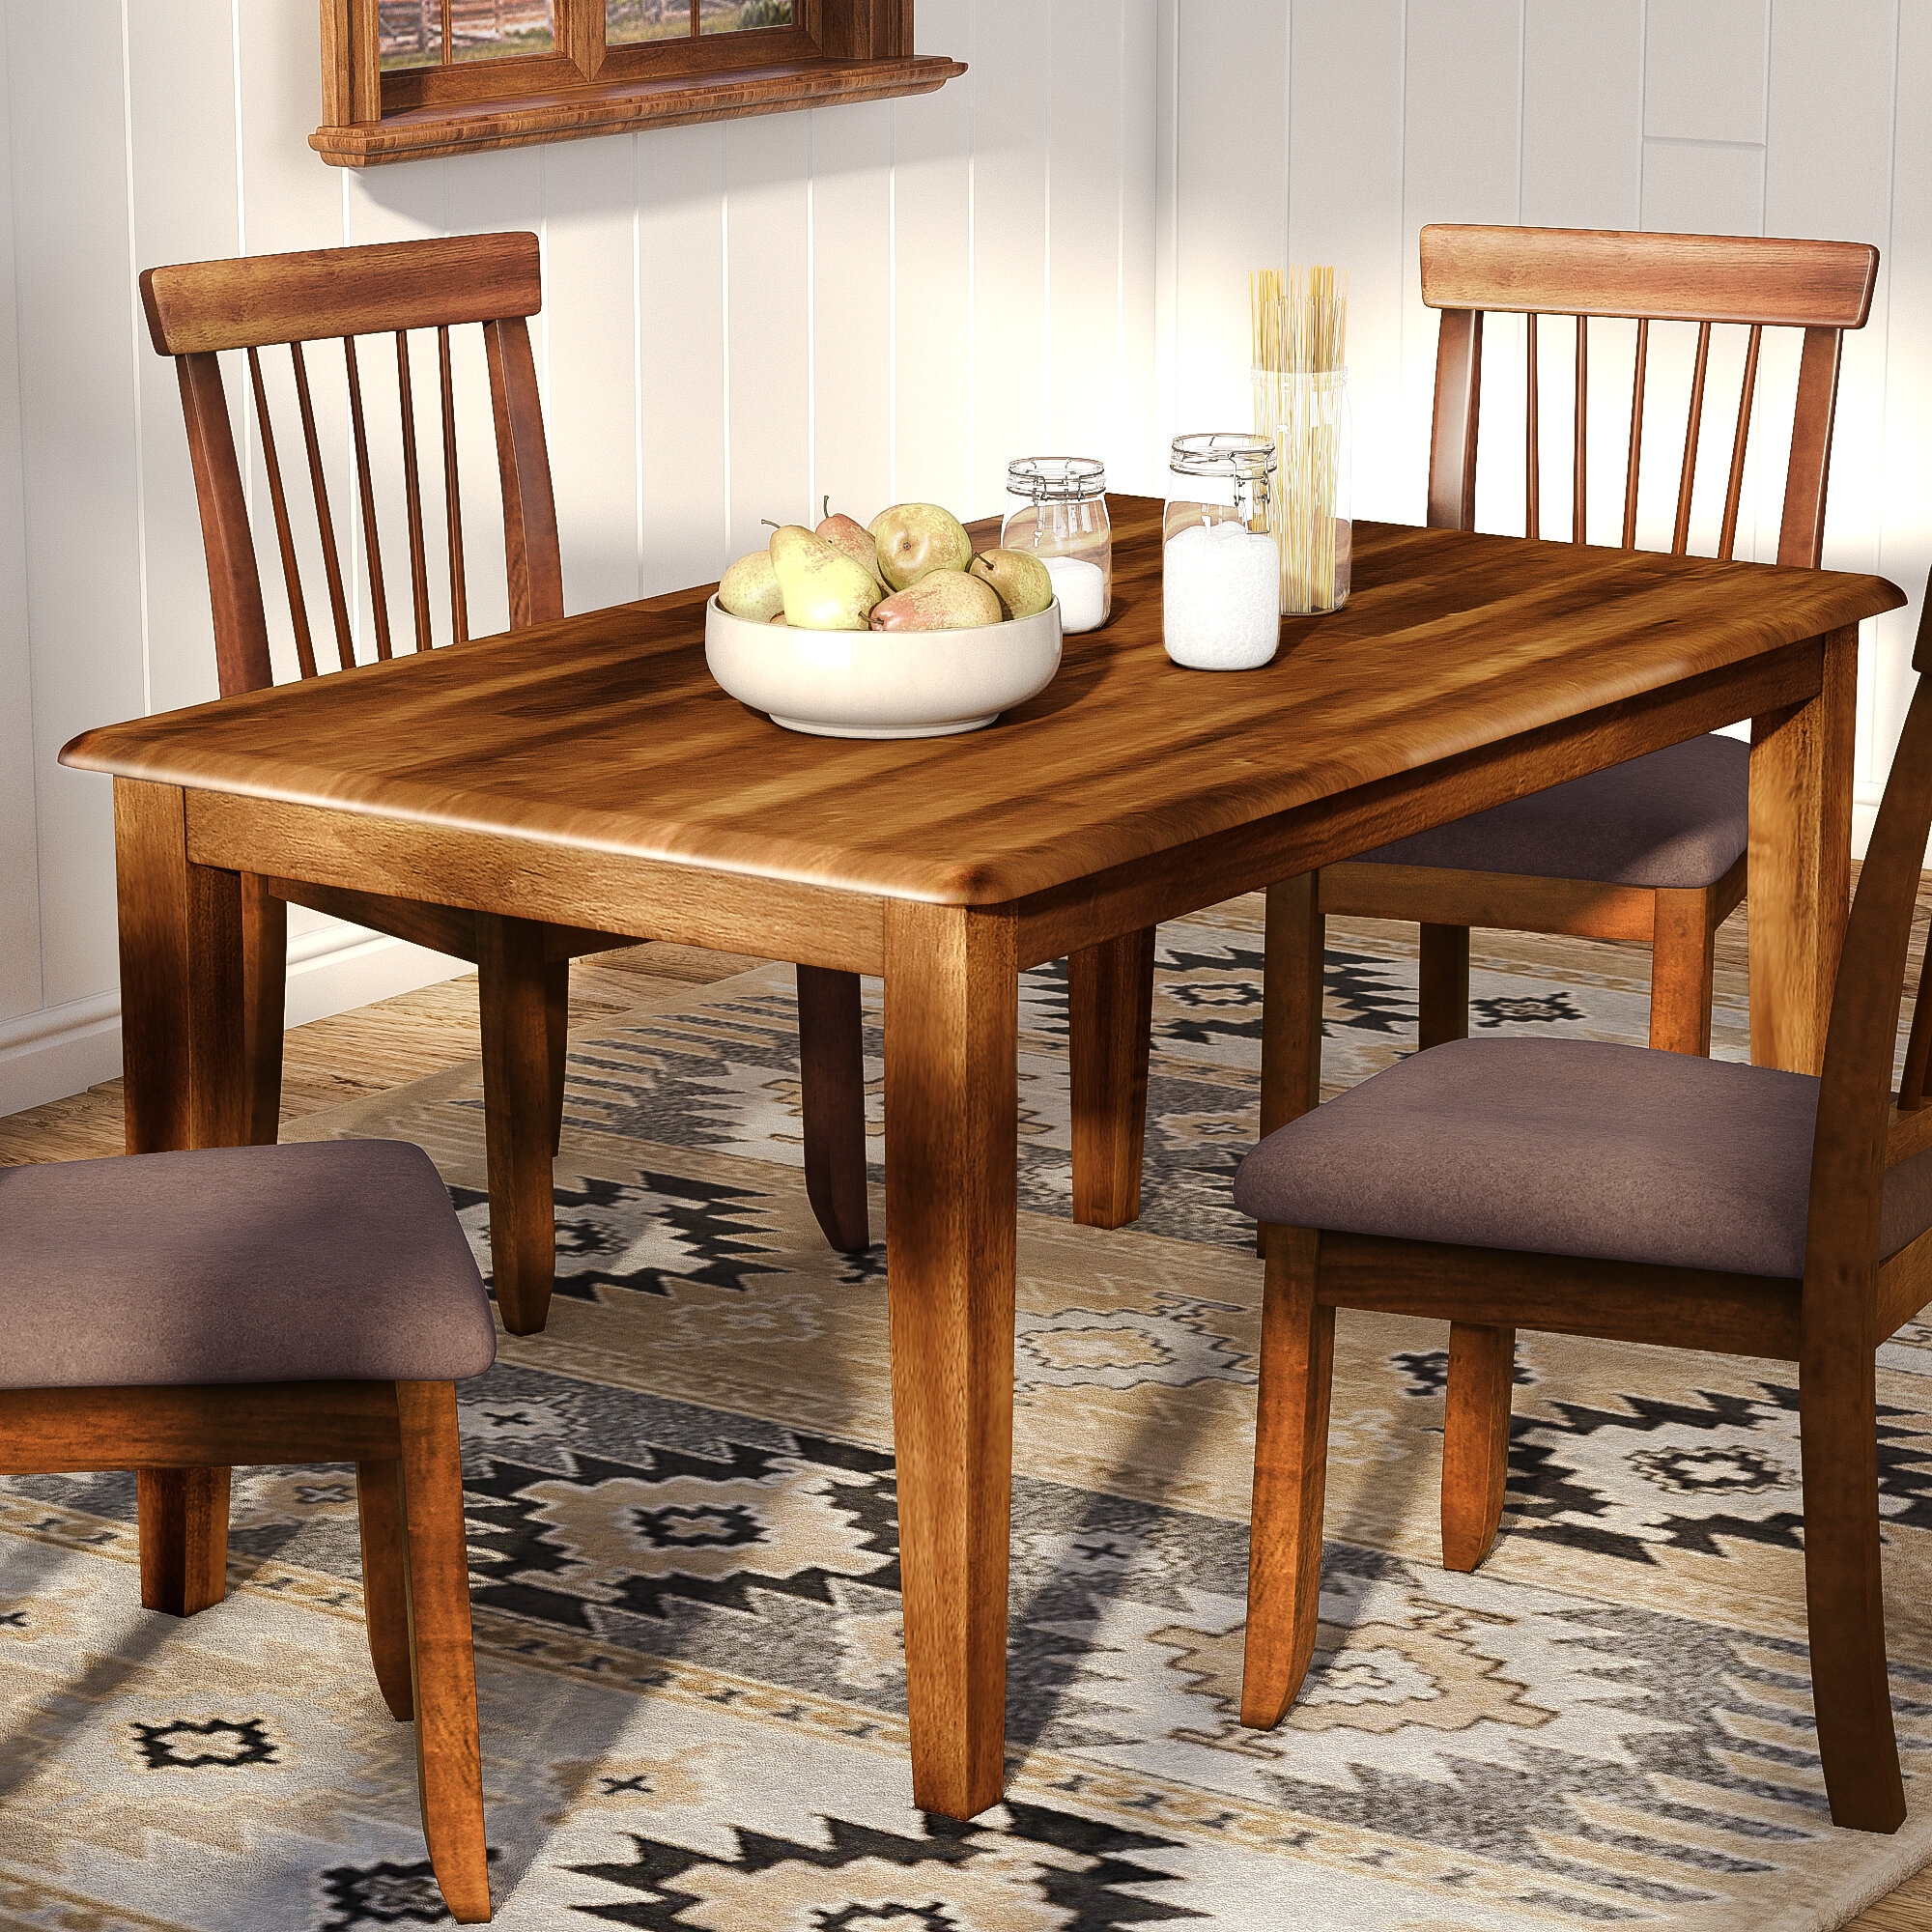 5 Piece Kitchen Dining Room Sets You Ll Love In 2021 Wayfair